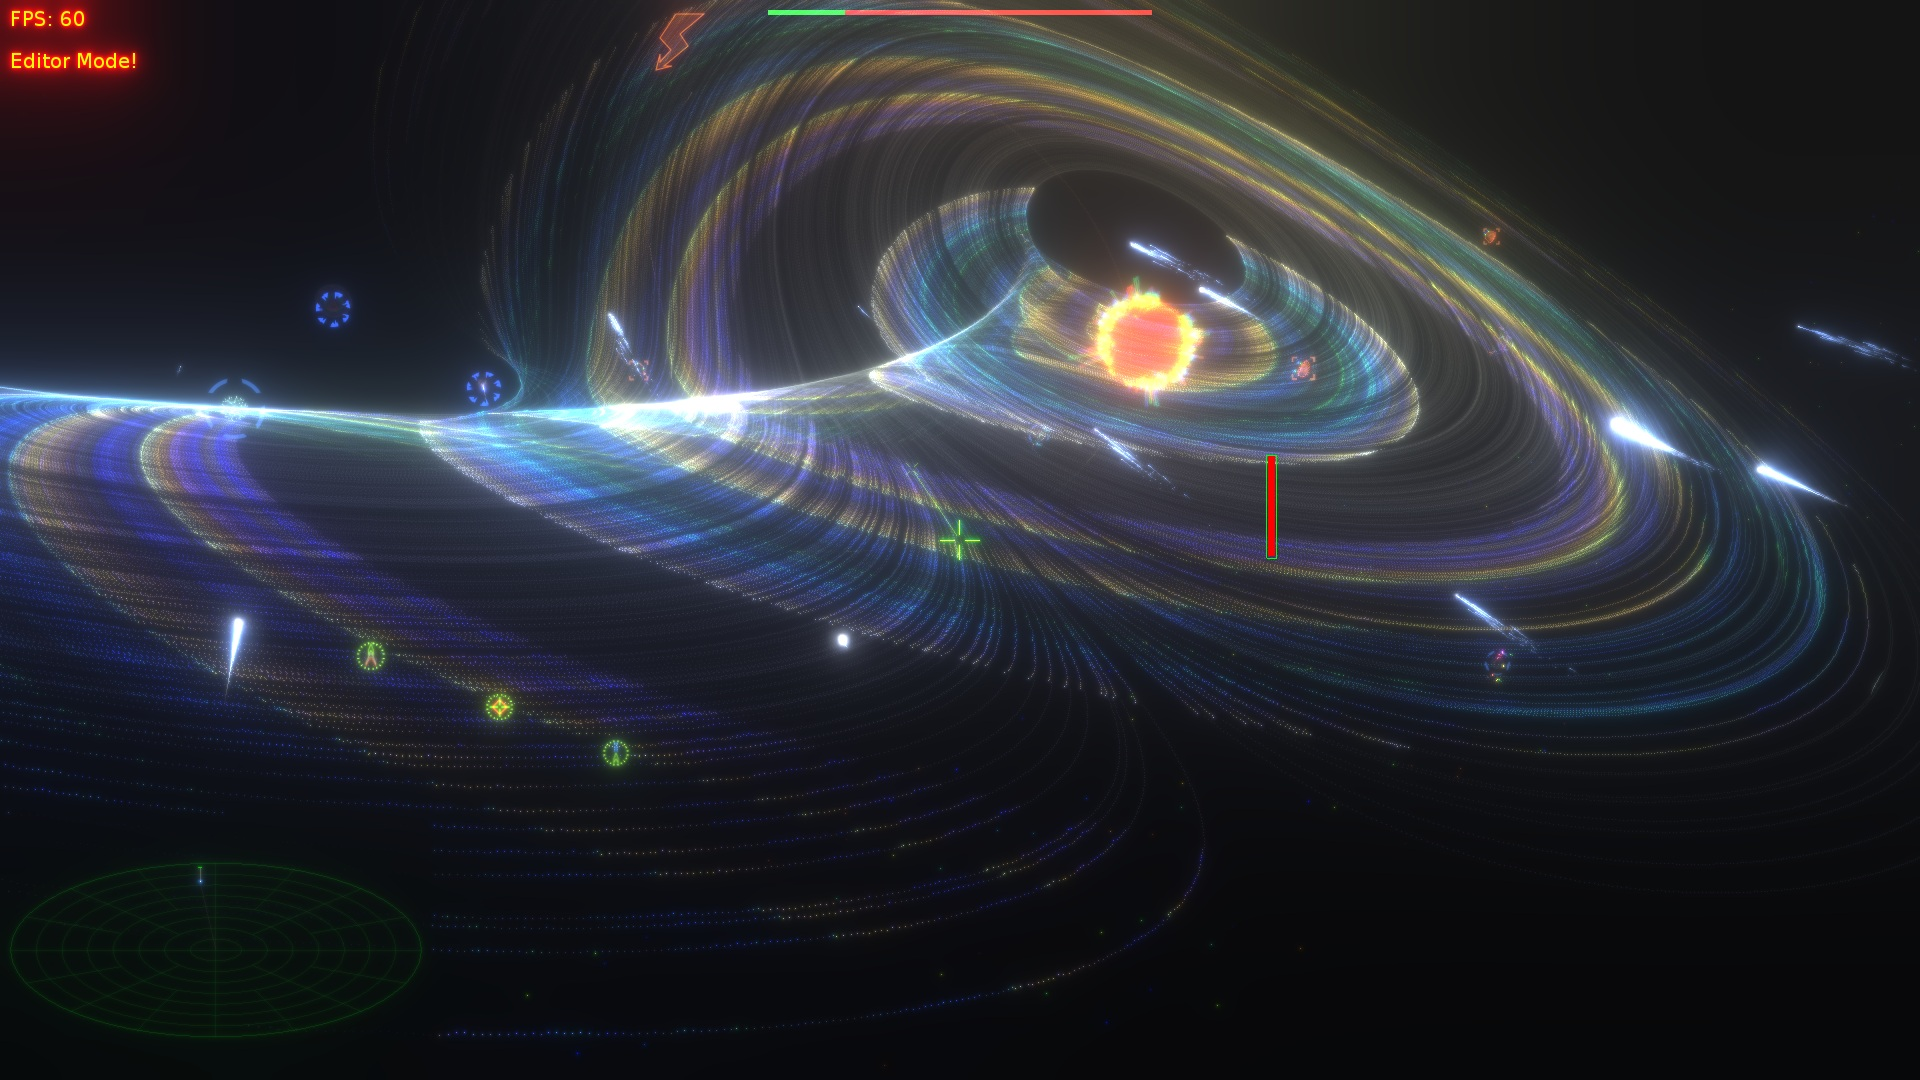 The Polynomial - Space of the music screenshot